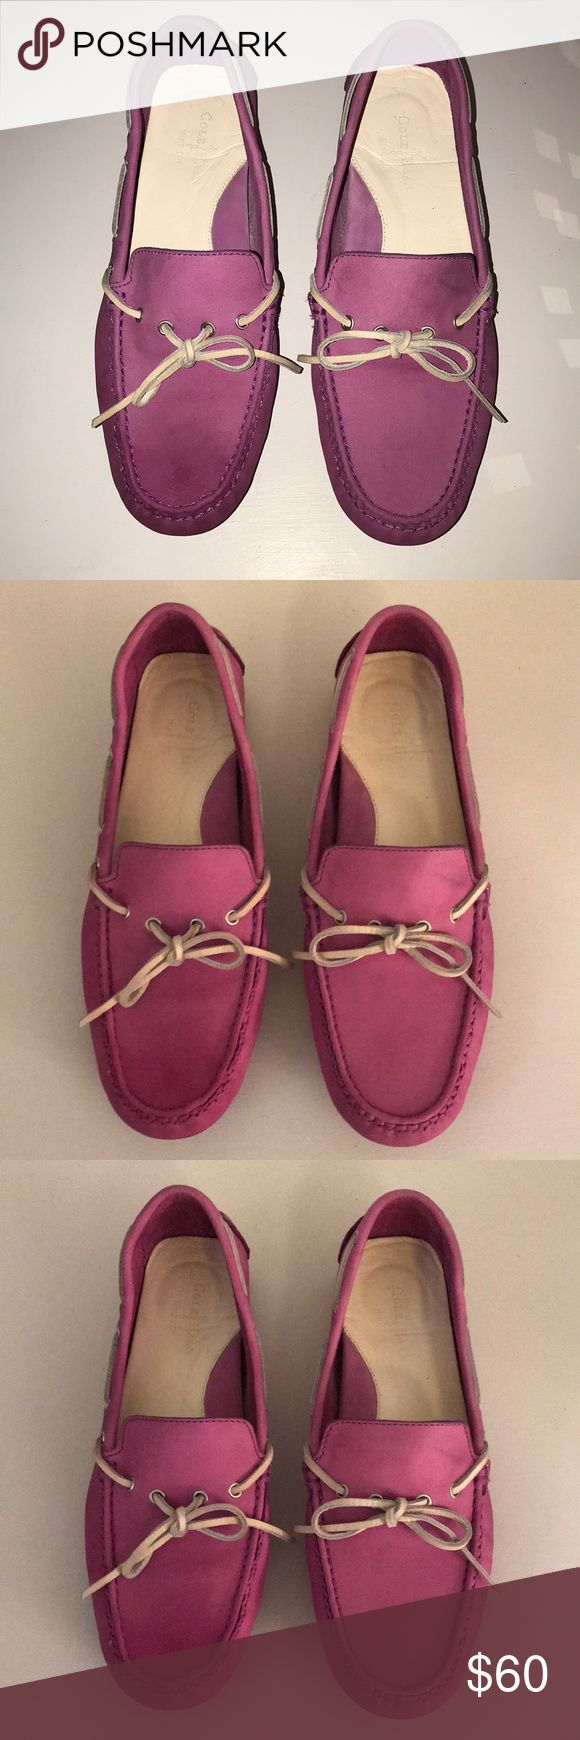 Cole Haan Purple Driving Moccasin Loafer 9.5M Cole Haan Purple (medium purple, covershot has closest color) Driving Loafers/moccasins in size 9.5M. These suede loafers have been maintained with suede cleaner on a regular basis.  Women's size 9.5M Cole Haan Shoes Flats & Loafers